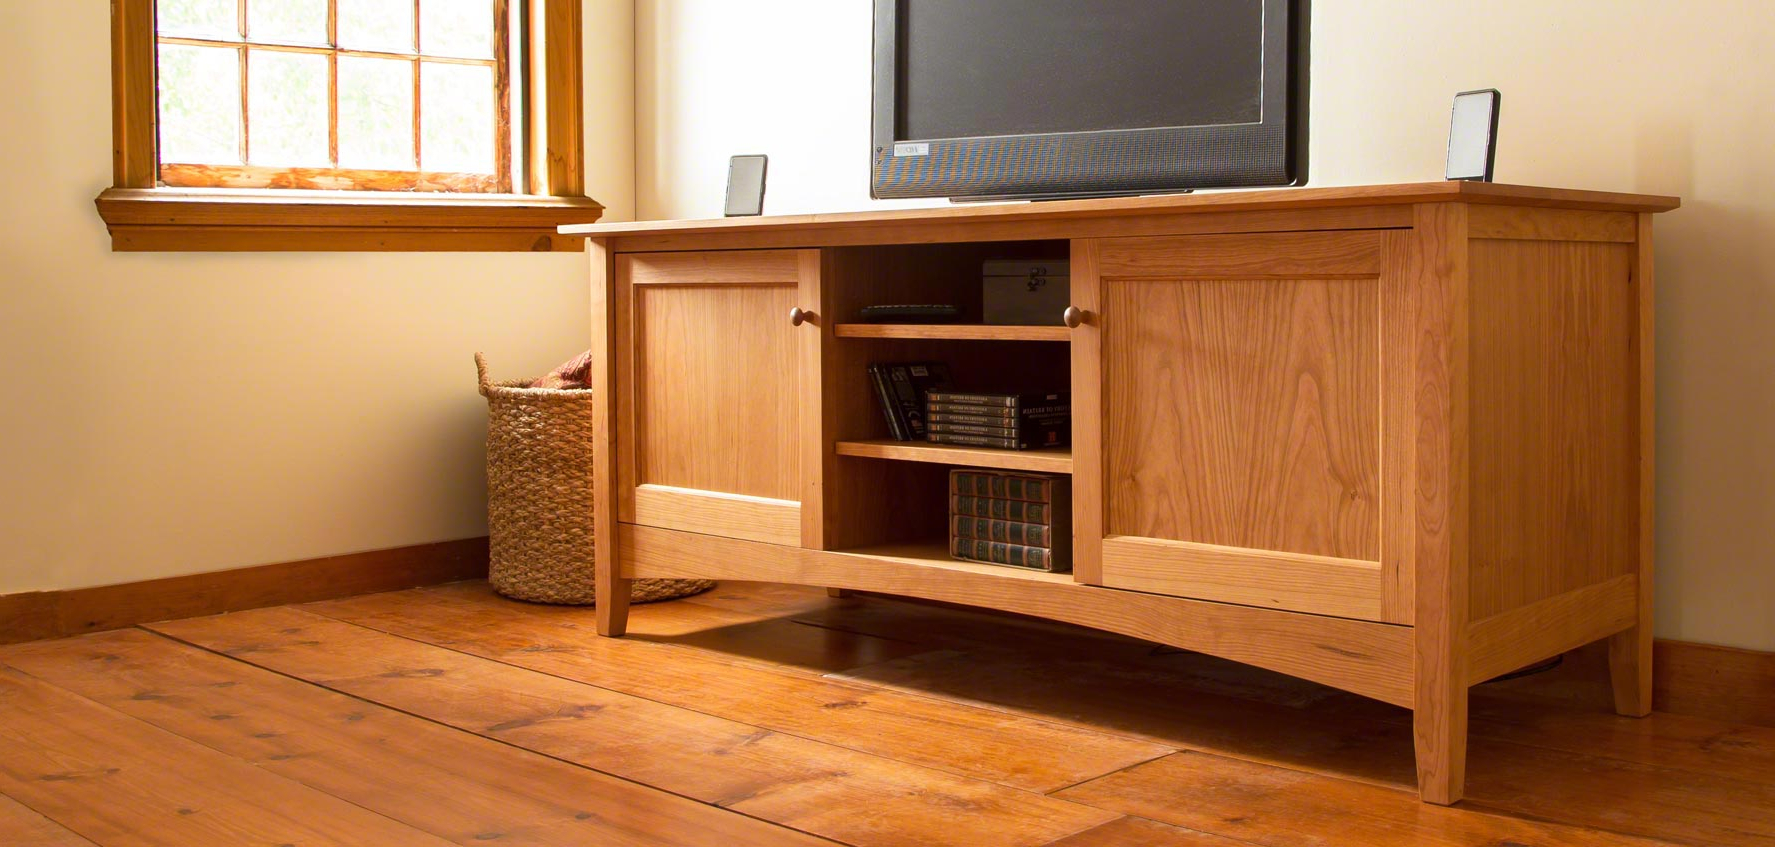 Solid Oak Tv Stands Within Fashionable Handcrafted Wood Tv Stands & Media Consoles – Vermont Woods Studios (Gallery 9 of 20)